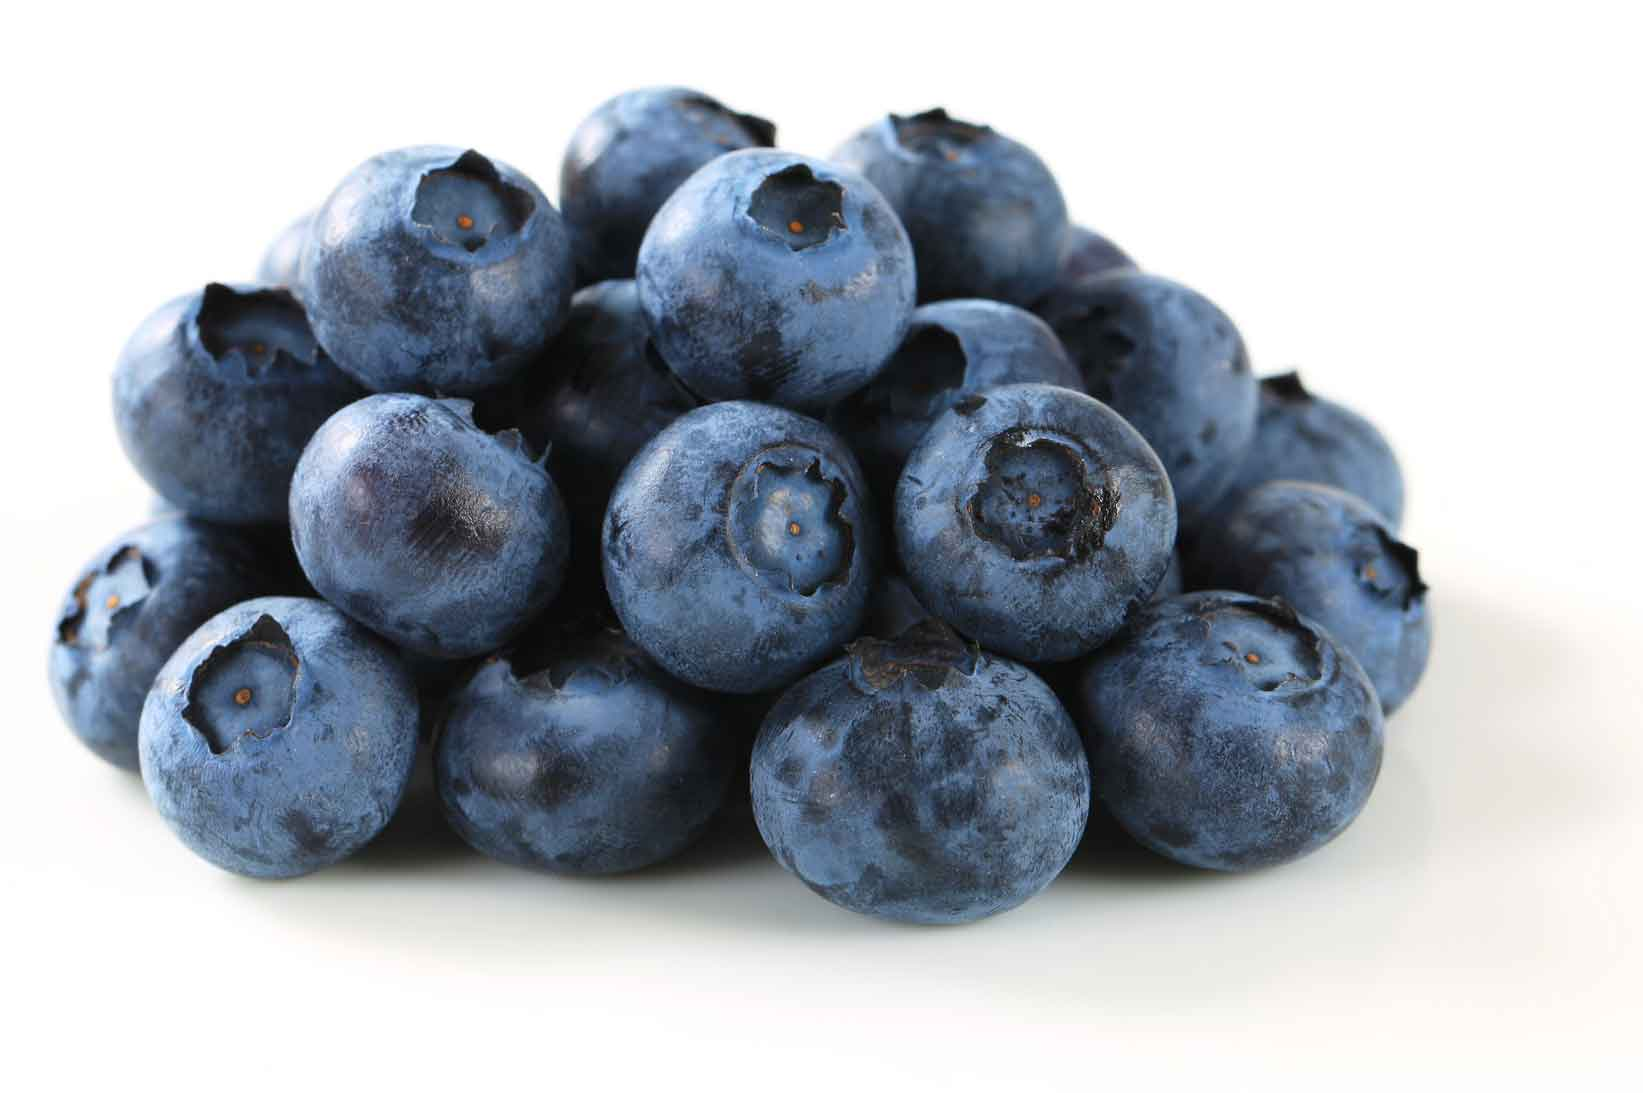 Blueberries clipart blueberry plant. For commercial growers genetics